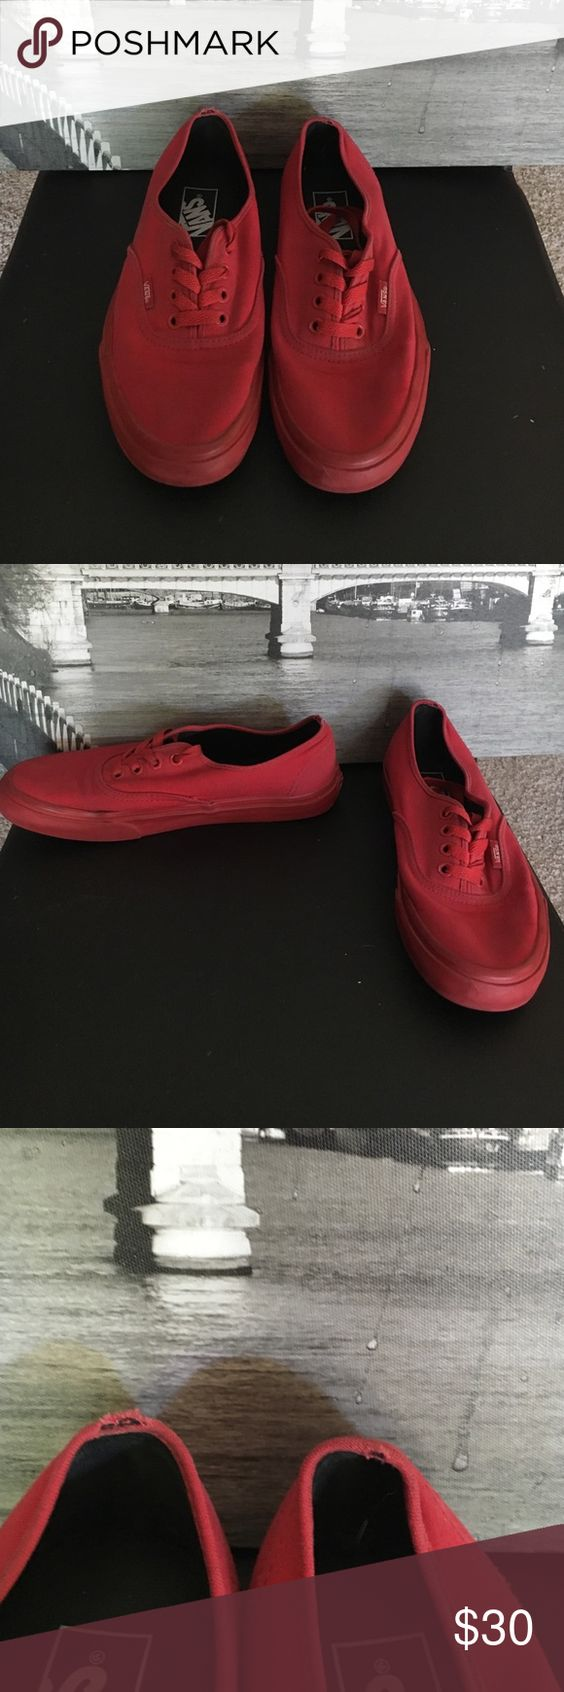 Red Vans Good condition red vans. Any questions please ask. Barley worn, has a little tear at back of shoes as you could see in pictures. Always accepting reasonable offers. Vans Shoes Sneakers